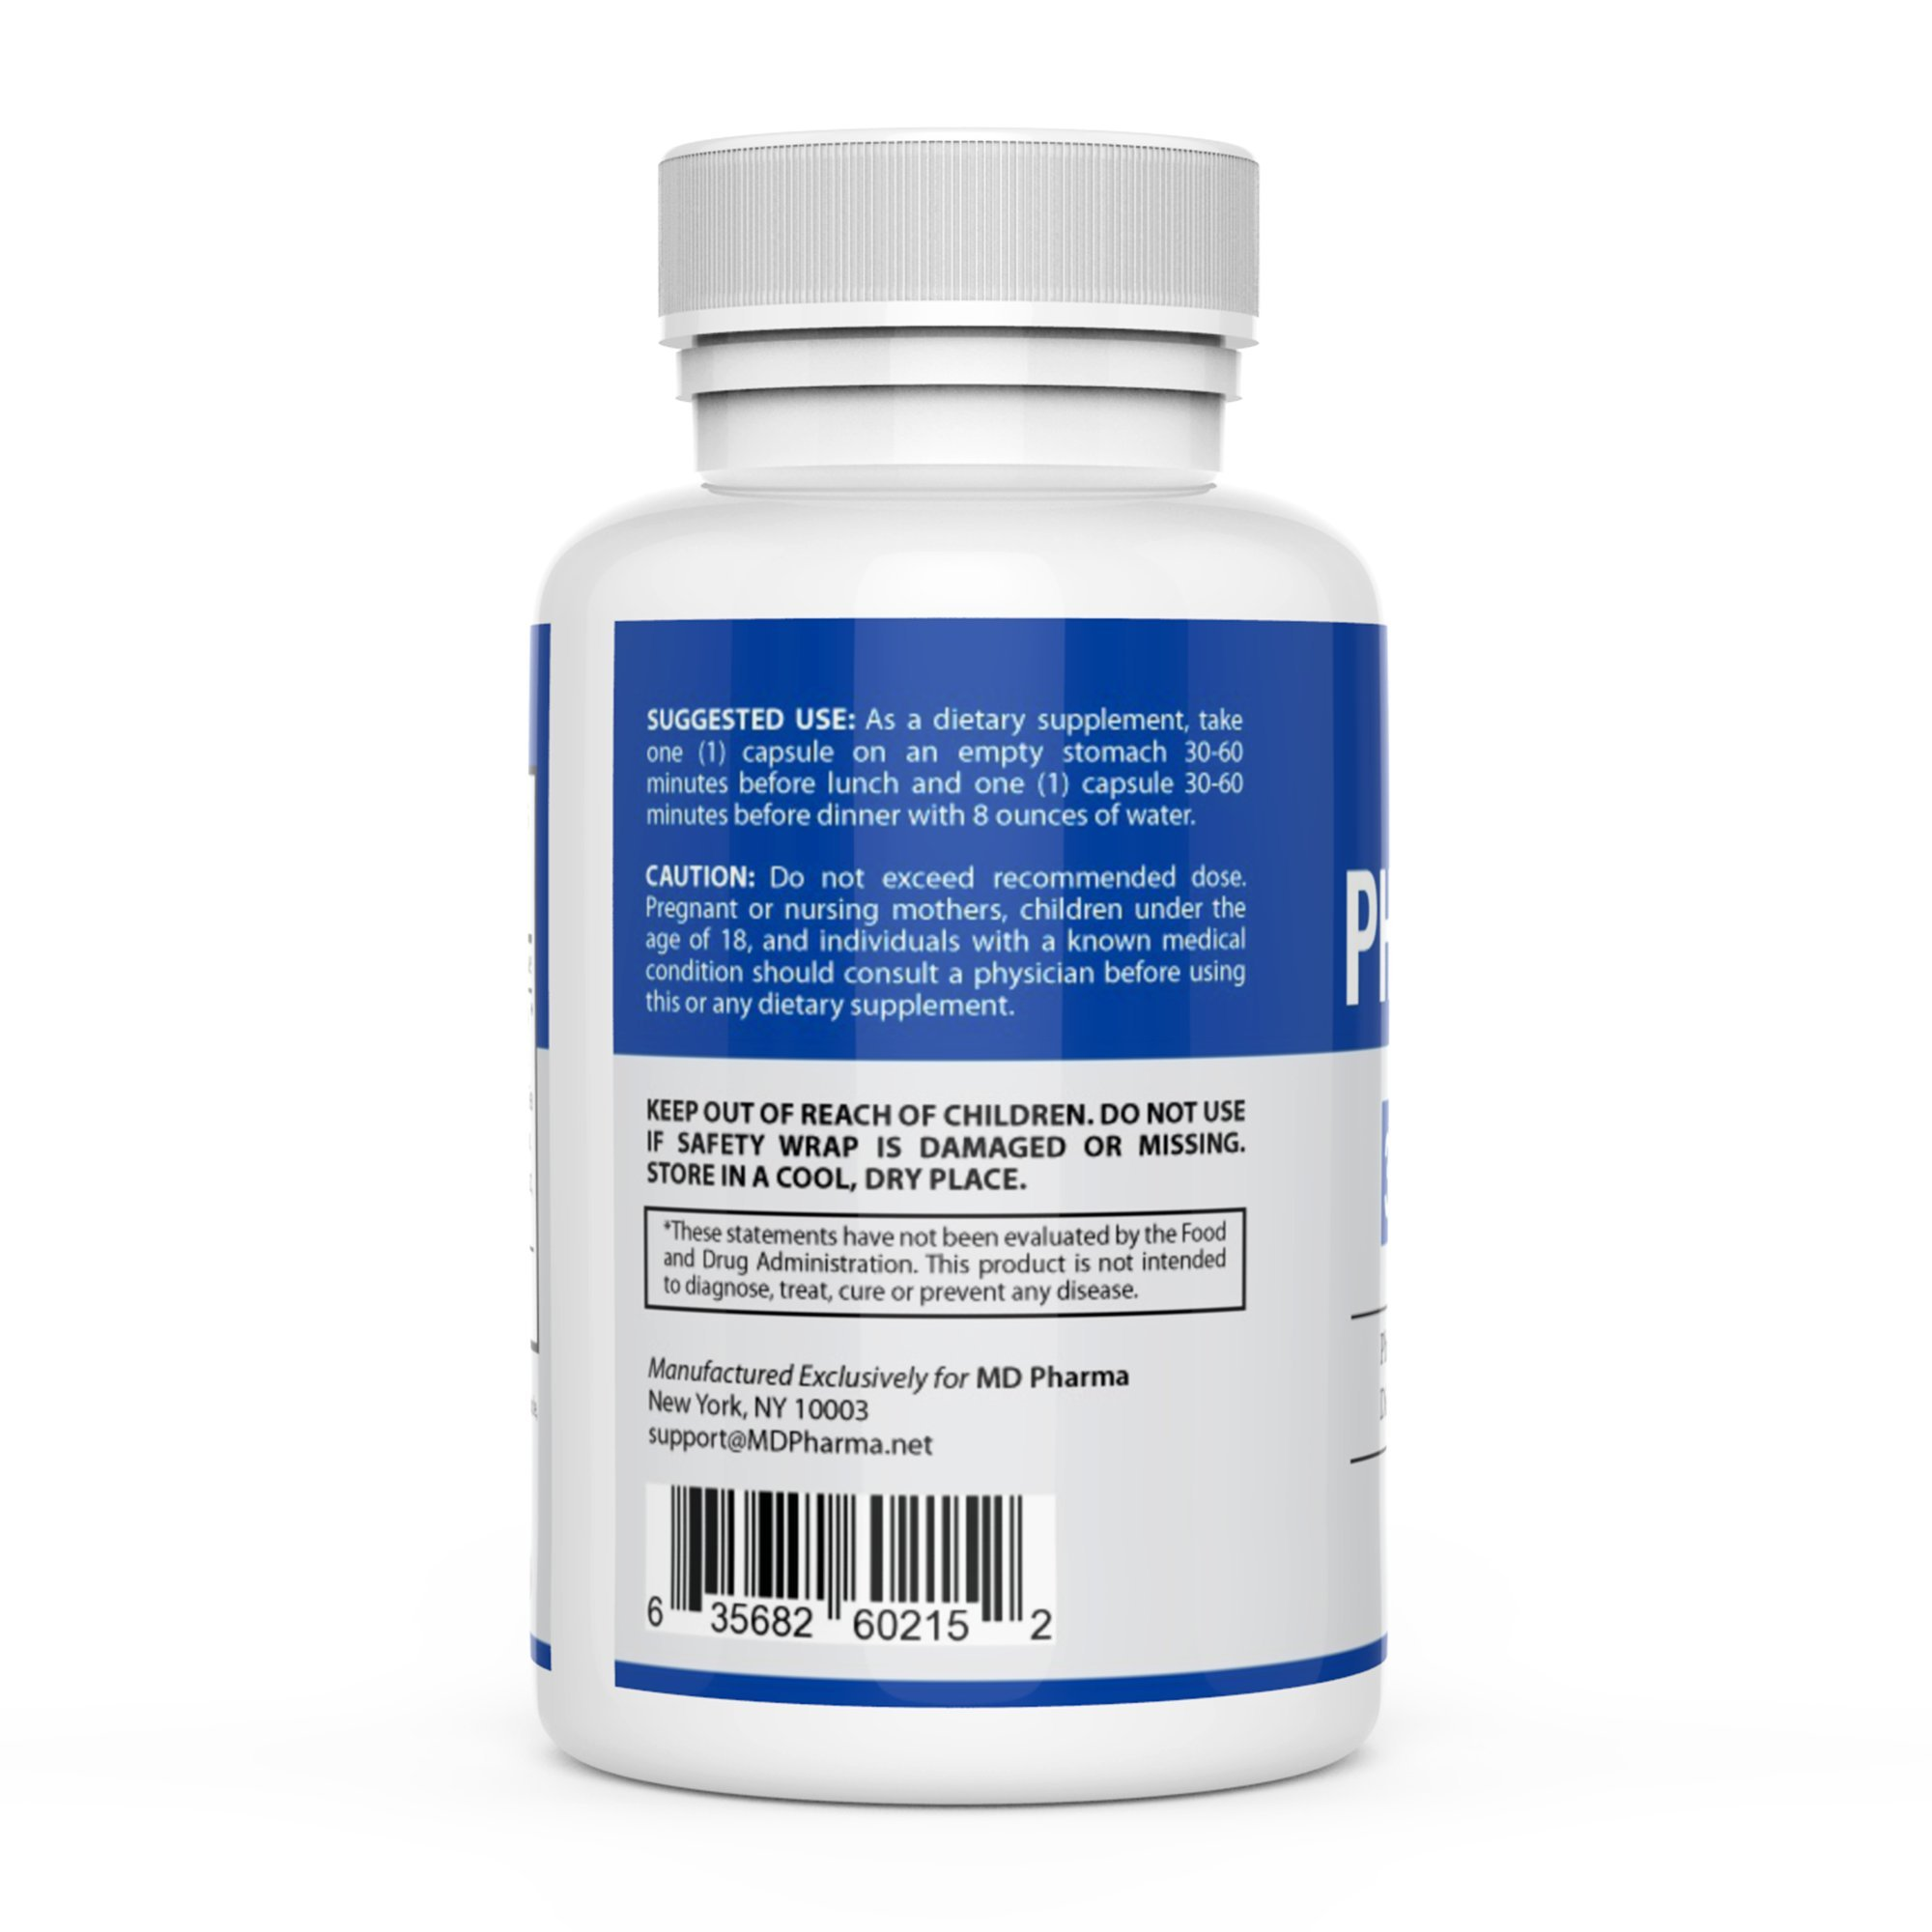 PHEN MAXX 37.5 ® - Weight Loss Pills - Fat Burner - Diet Pills - Appetite Suppressant - Diet Pills That Work Fast for Women and Men - Carb Block - Keto Friendly by PHEN MAXX 37.5 - Appetite Suppressant & Fat Burner (Image #8)